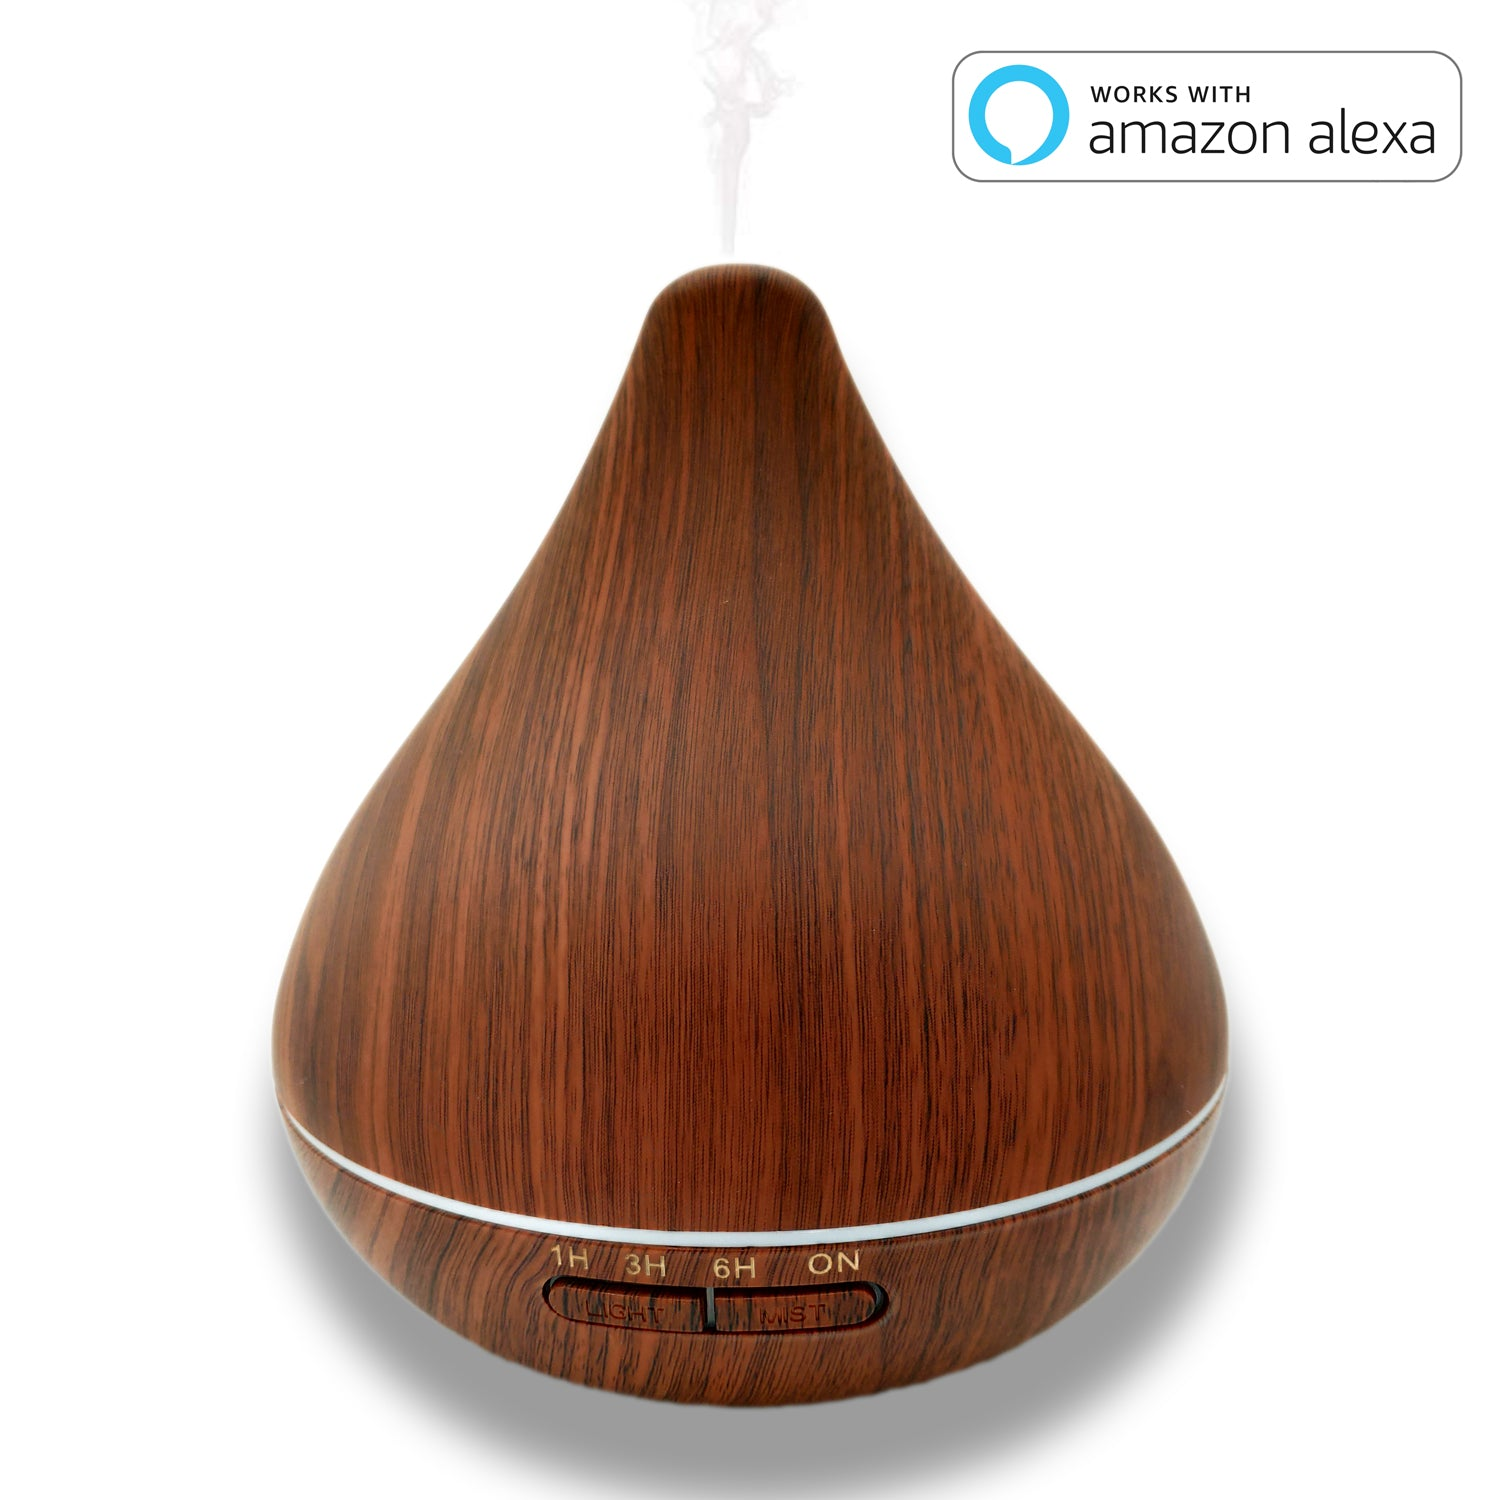 SockeTech Diffuser for Essential Oils Compatible with Alexa&Google Home,300ml Ultrasonic aromatherapy diffuser Essential Oil Diffuser humidifiers for bedroom,7 Color LED light - SockeTech